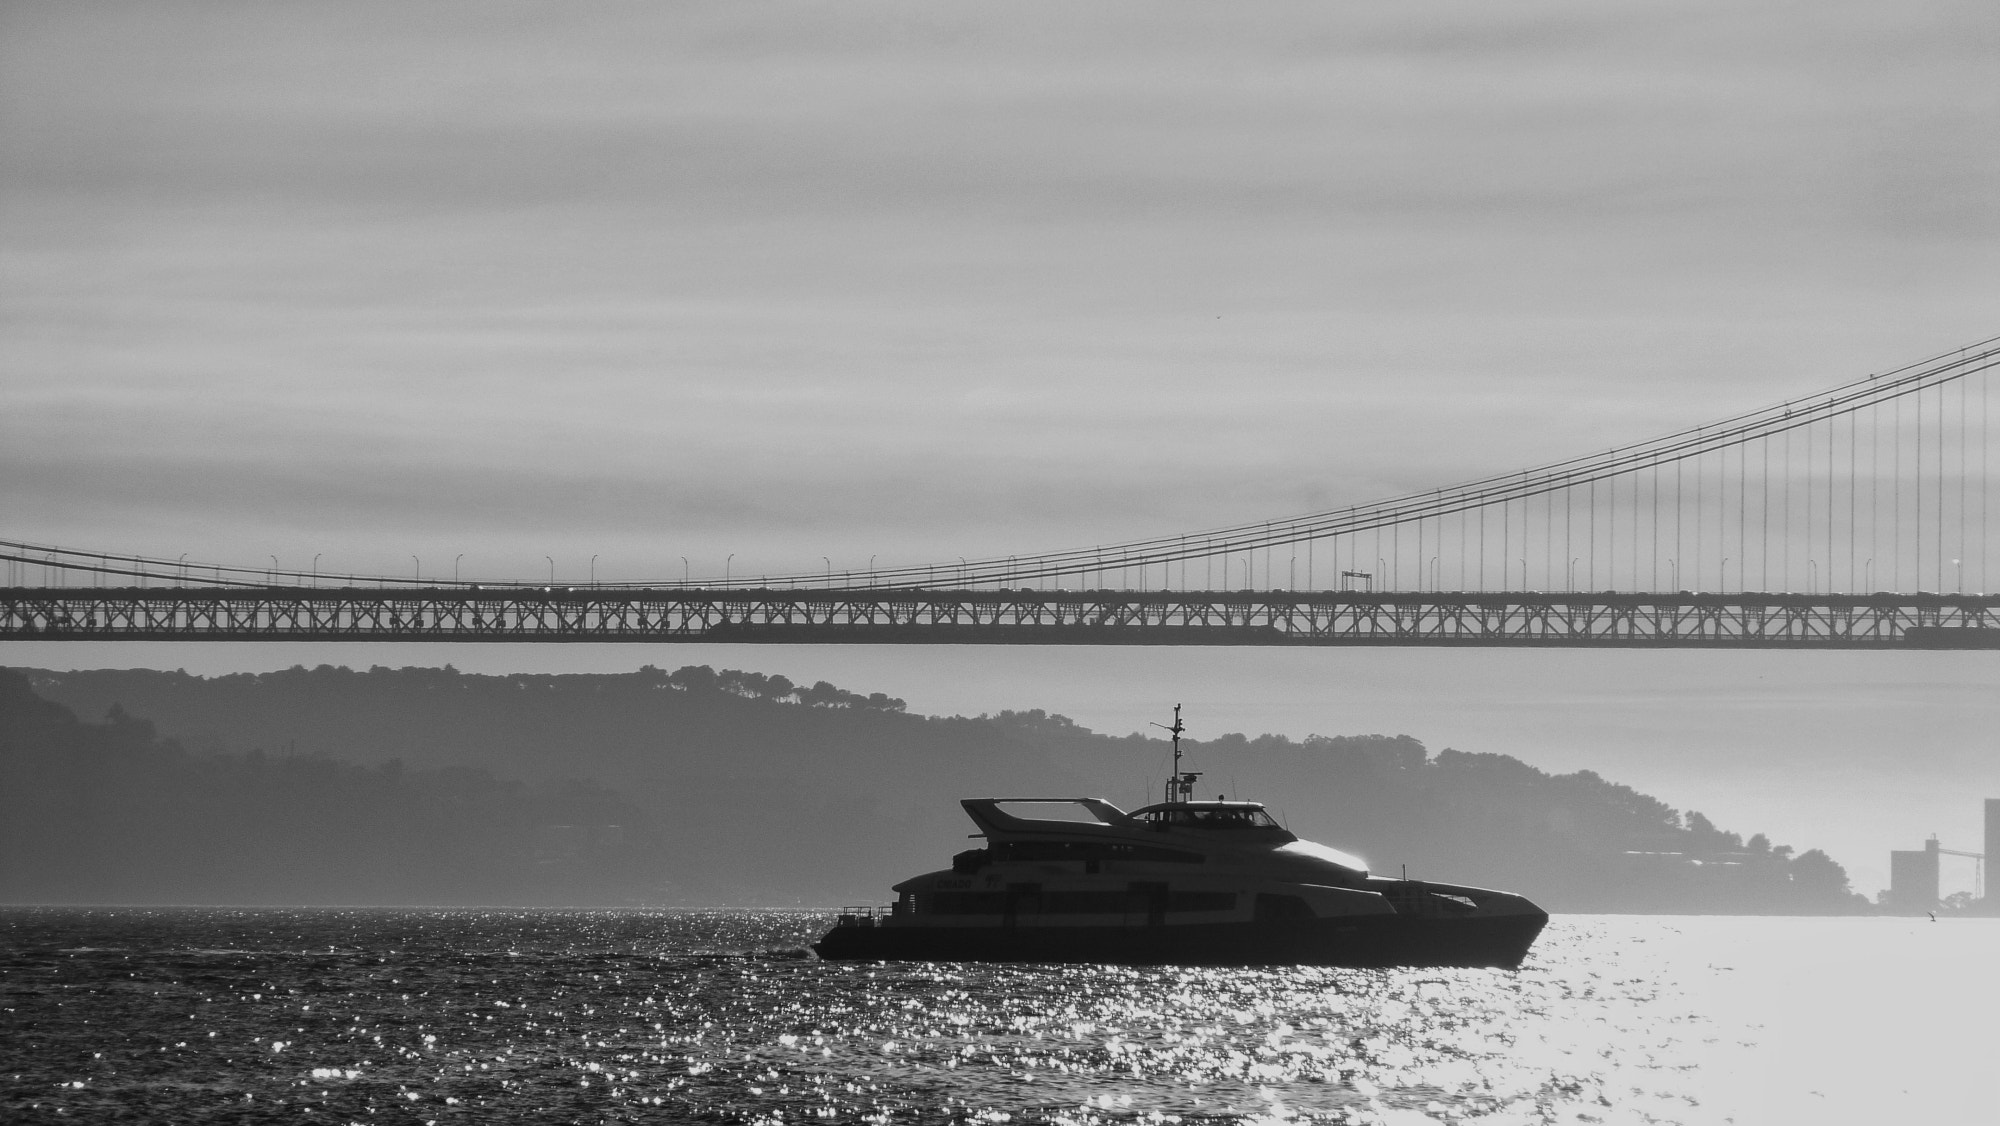 Photograph Tejo by Miza Monteiro on 500px